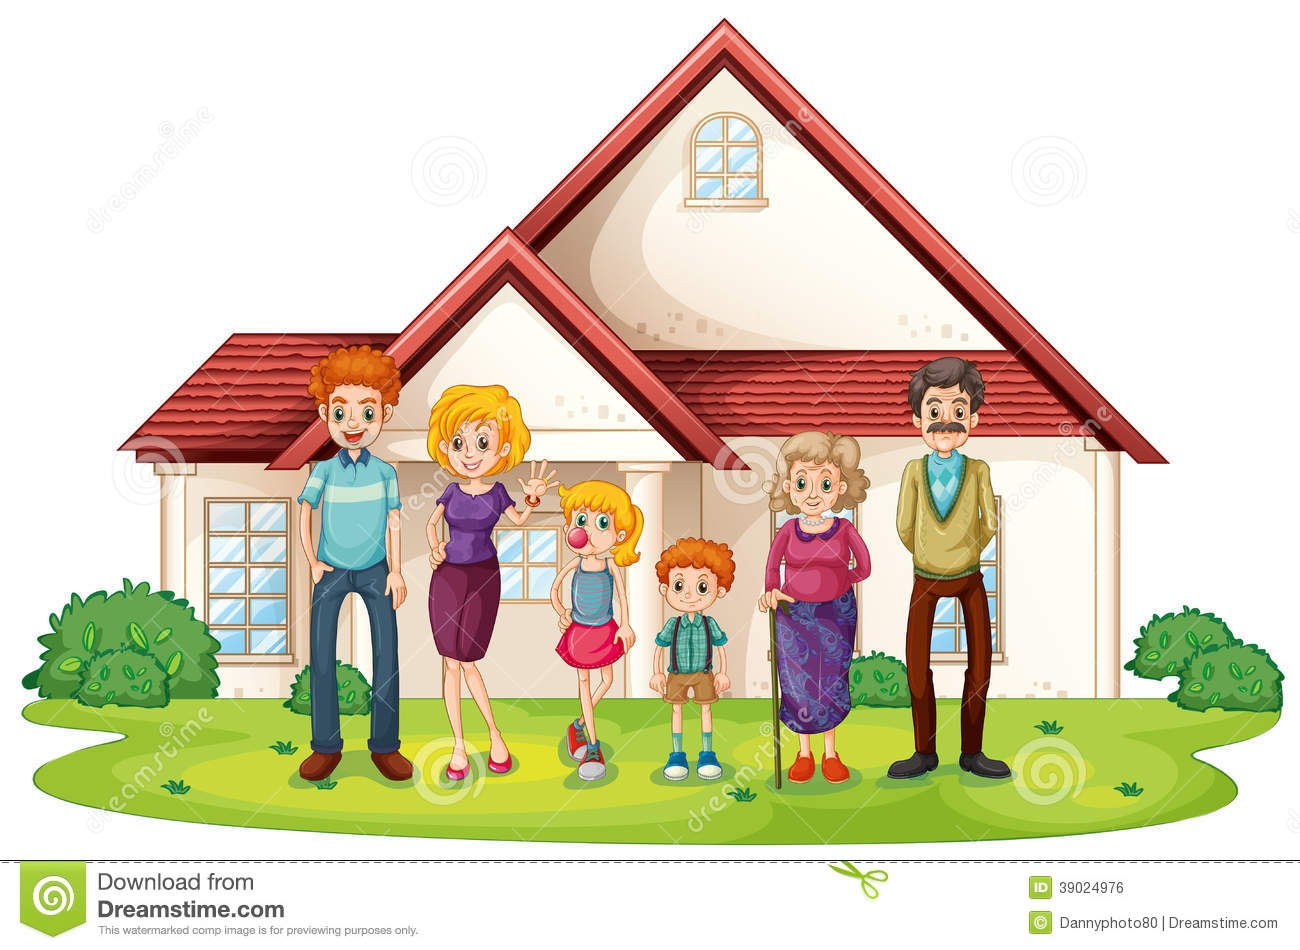 Hosue clipart home and family Family Clip Home and Download